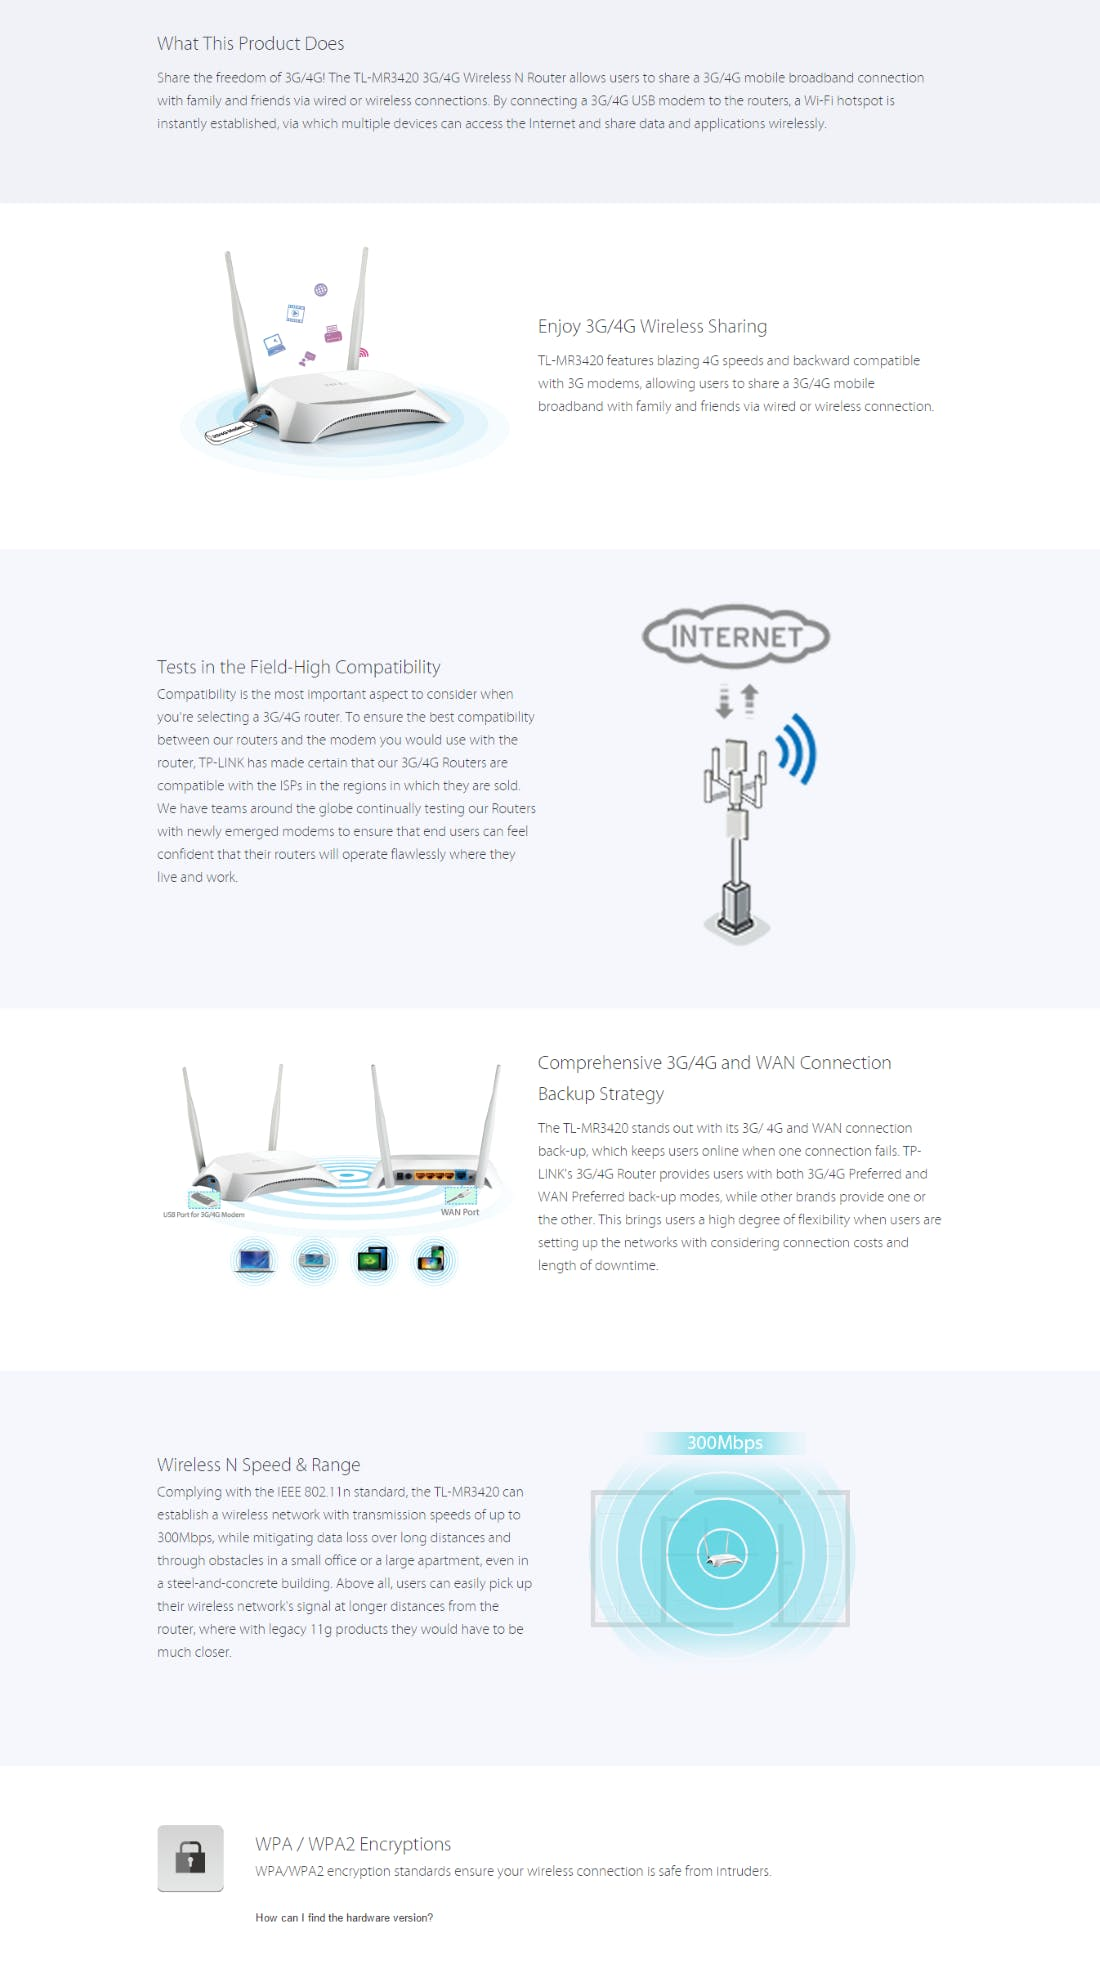 TP-LINK TL-MR3420 - 300Mbps 3G/4G Wireless N Router